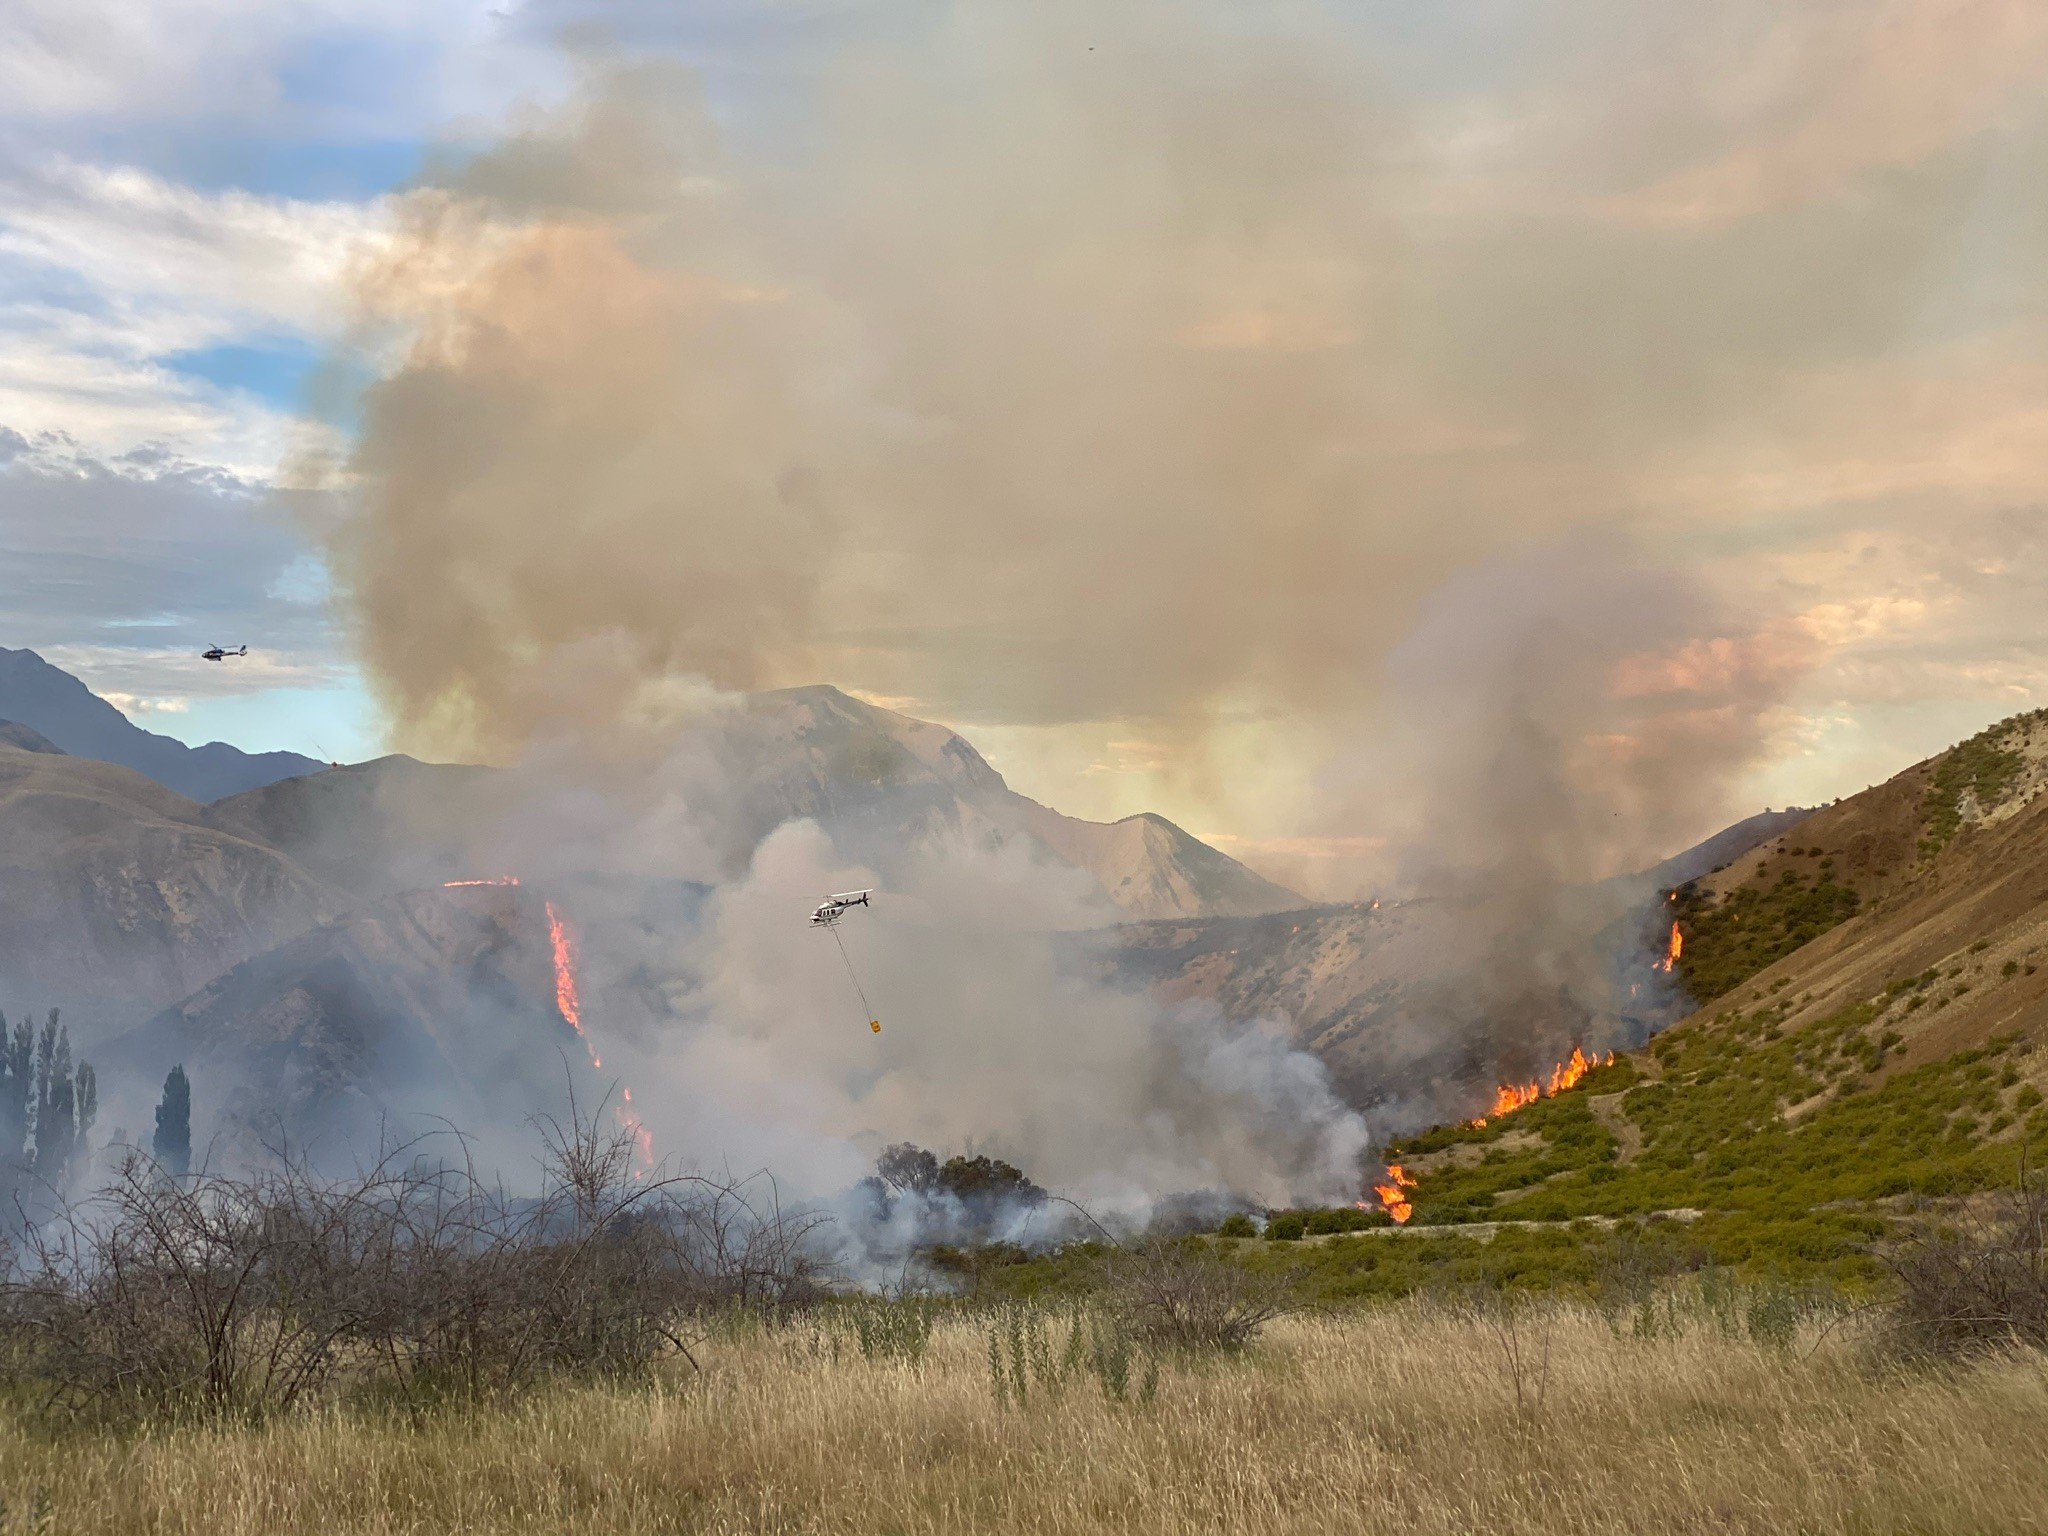 Helicopters working at the scene of the Clarence Valley fire. Photo: Fire and Emergency NZ